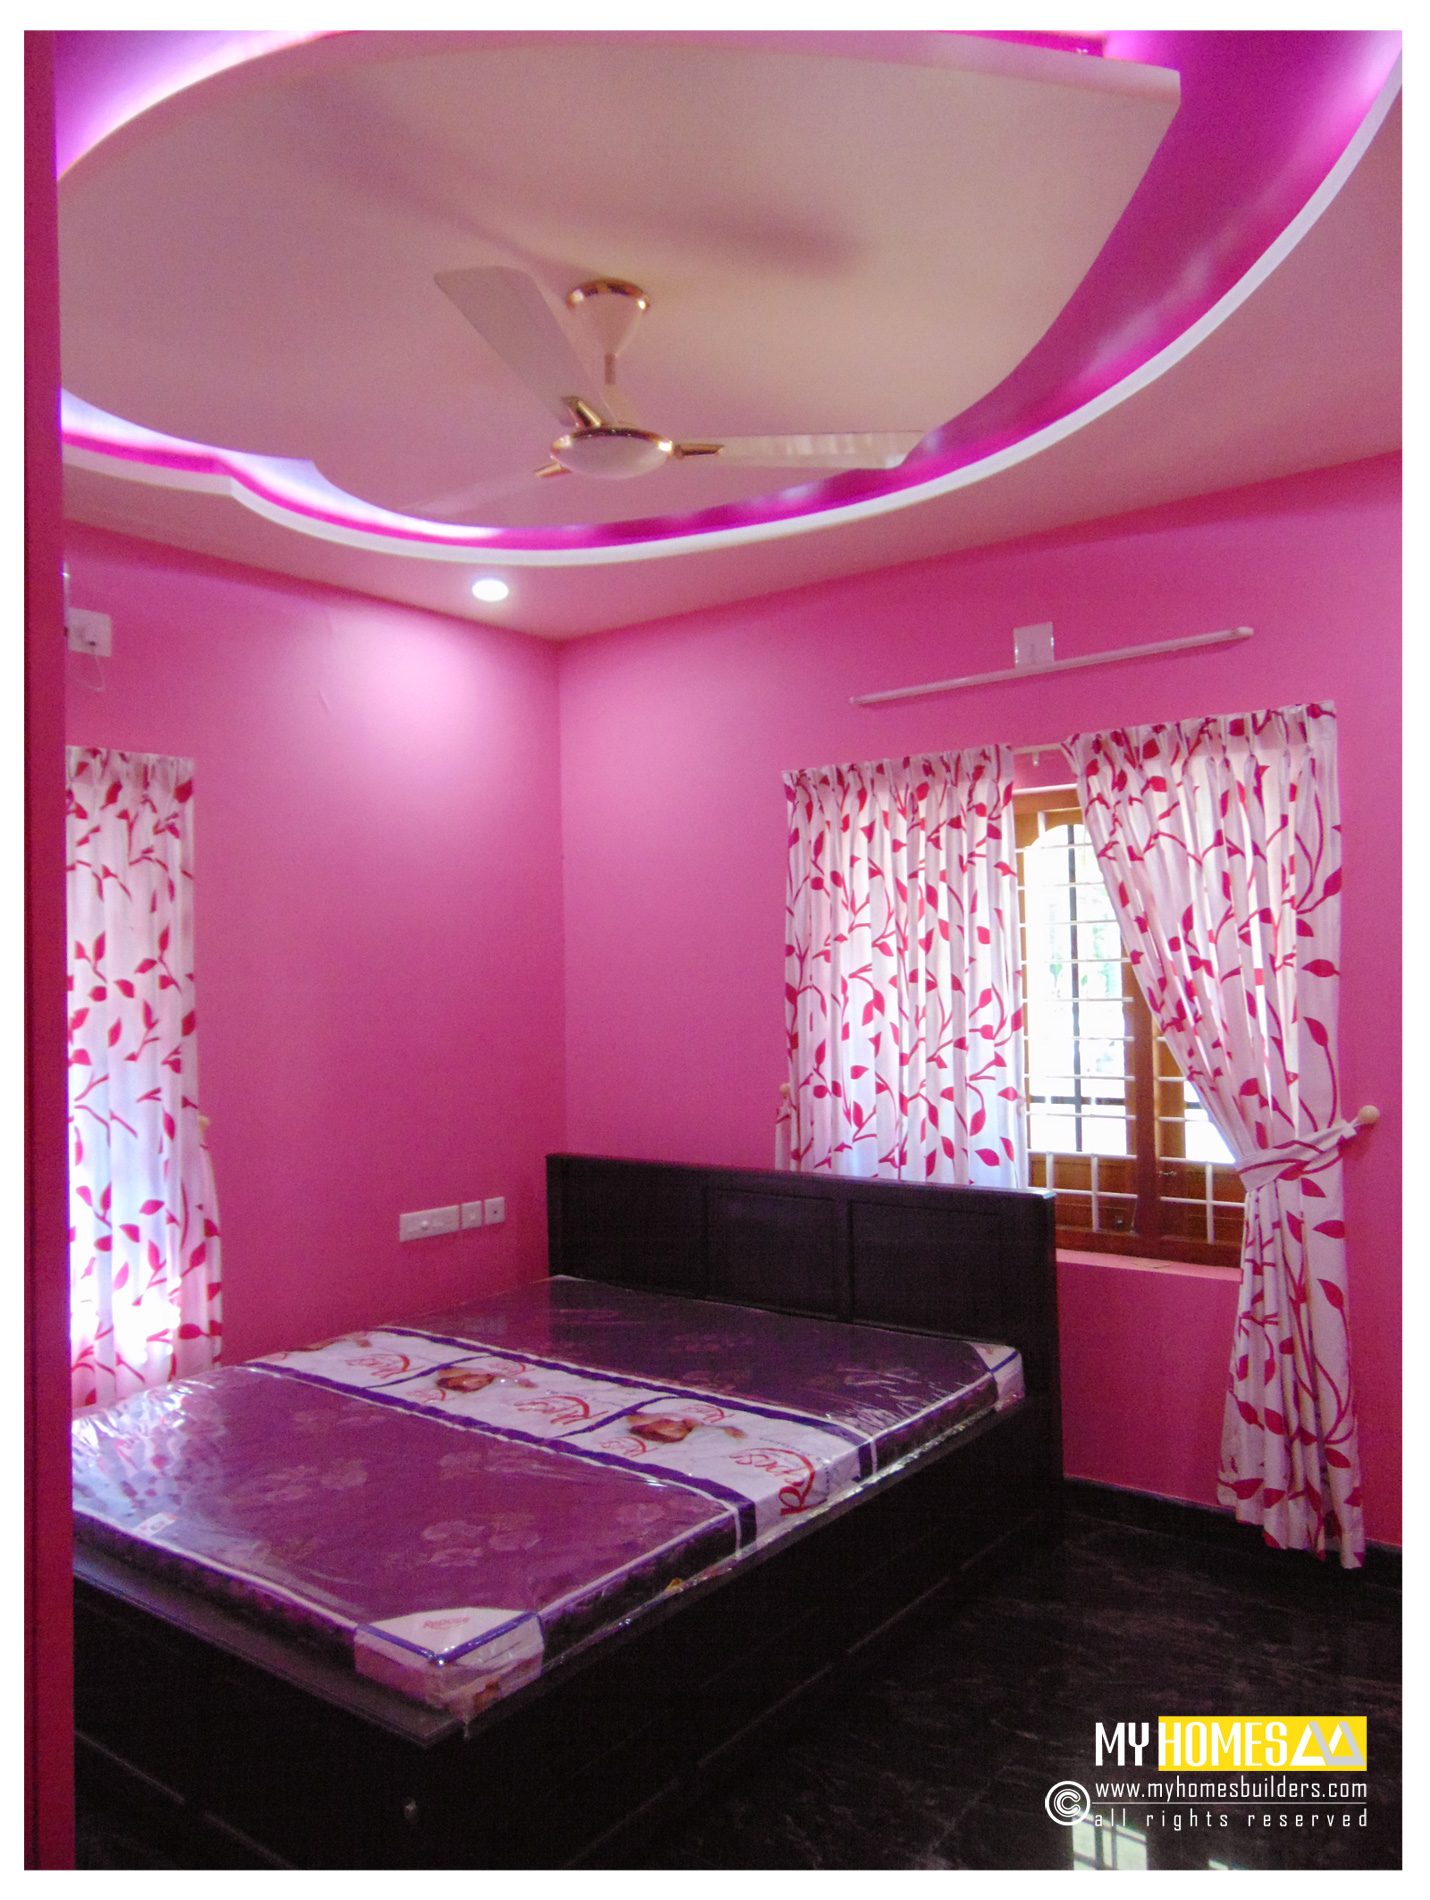 Simple style kerala bedroom designs ideas for home interior - Simple home decoration bedroom ...